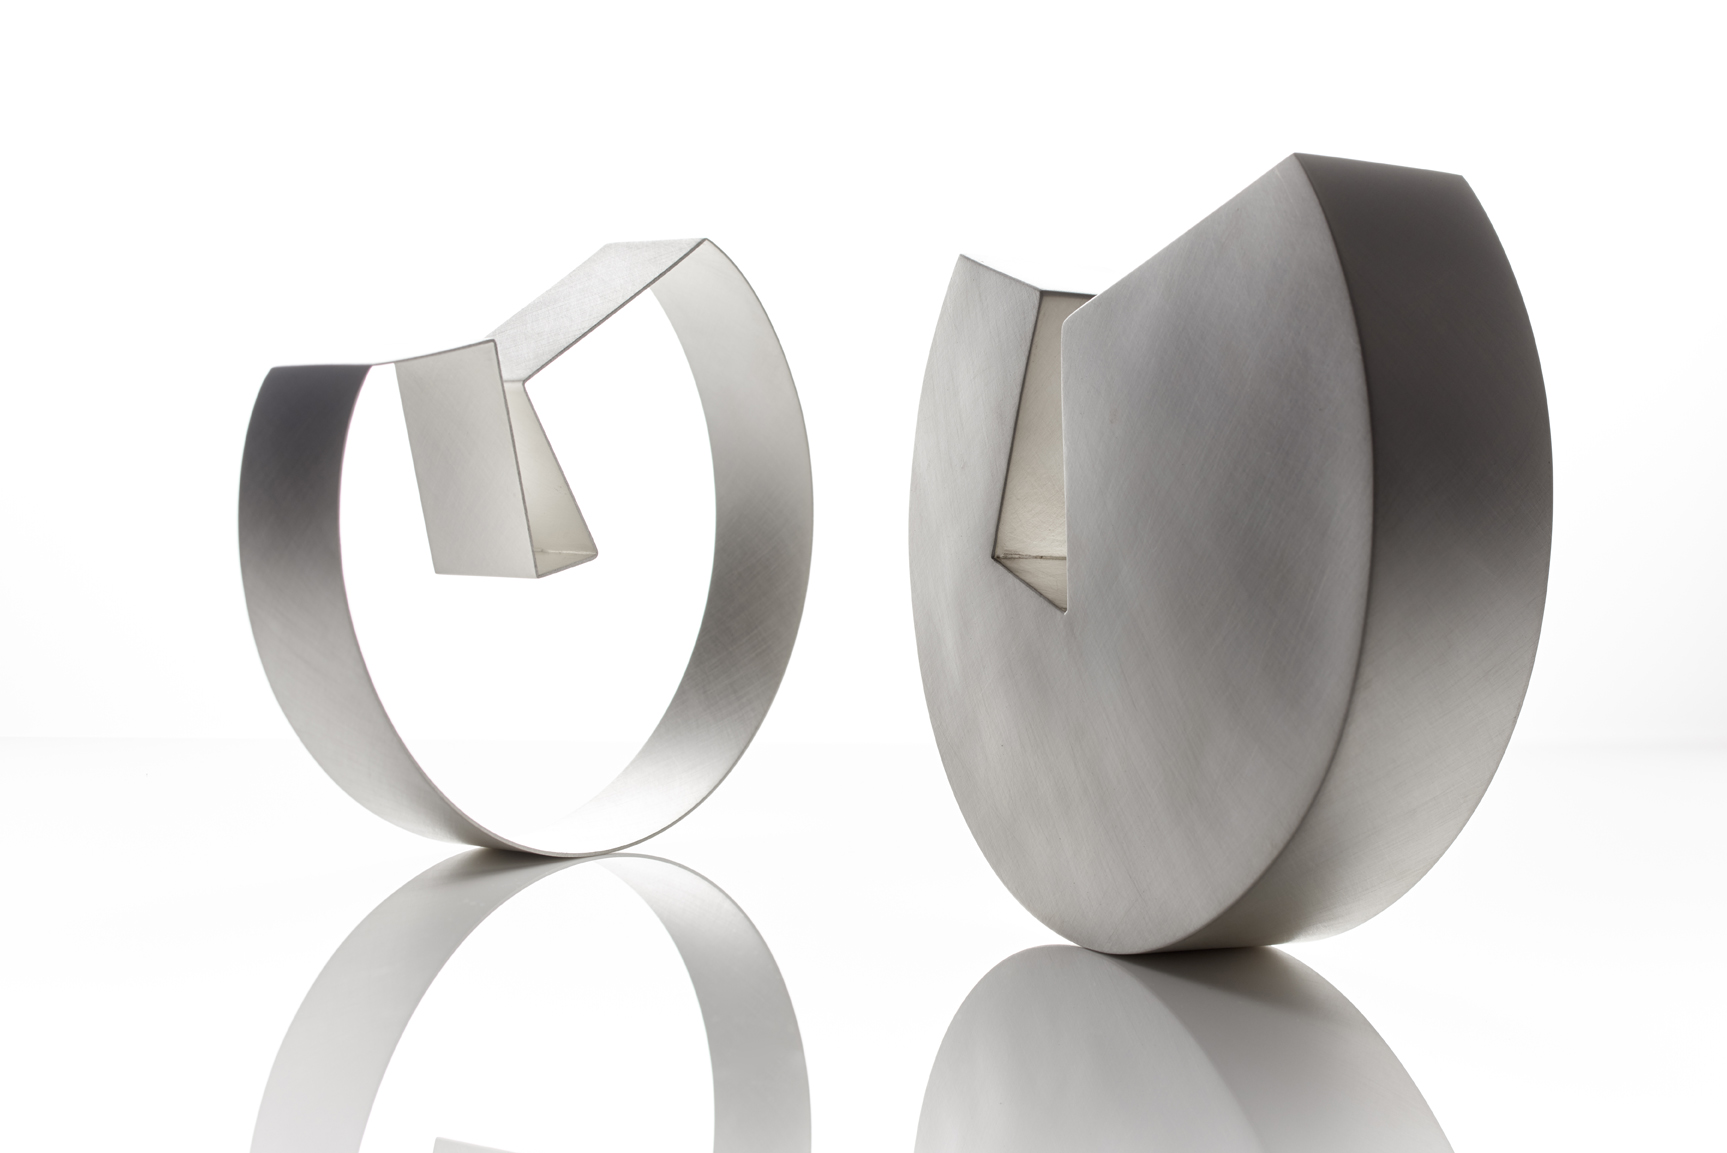 Juliette_Bigley_Two_Bowls_Sterling_Silver_2015_2.jpg